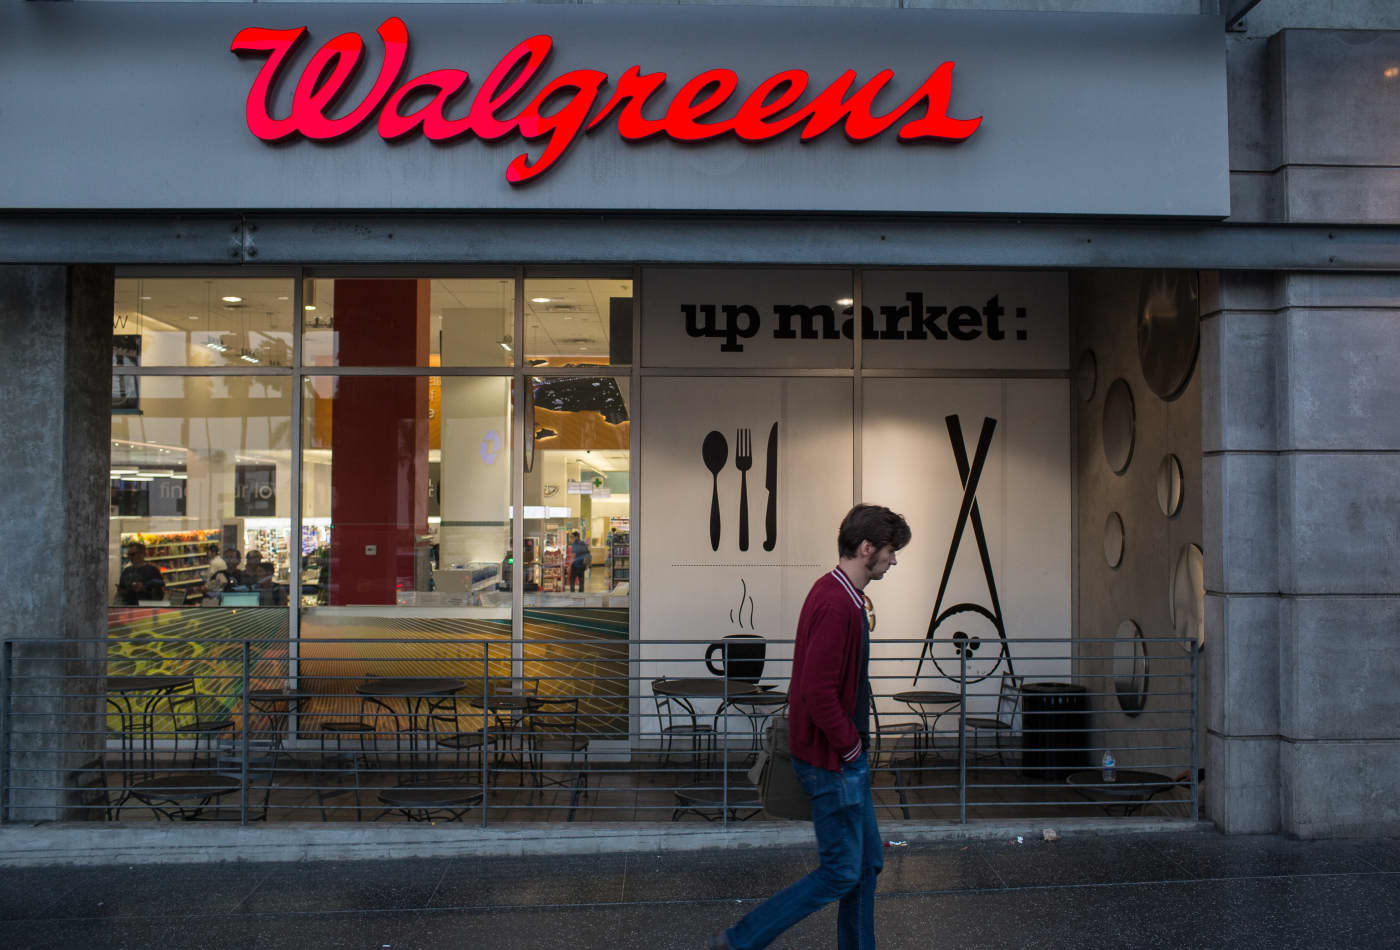 Walgreens to test drone delivery service with Alphabet's Wing